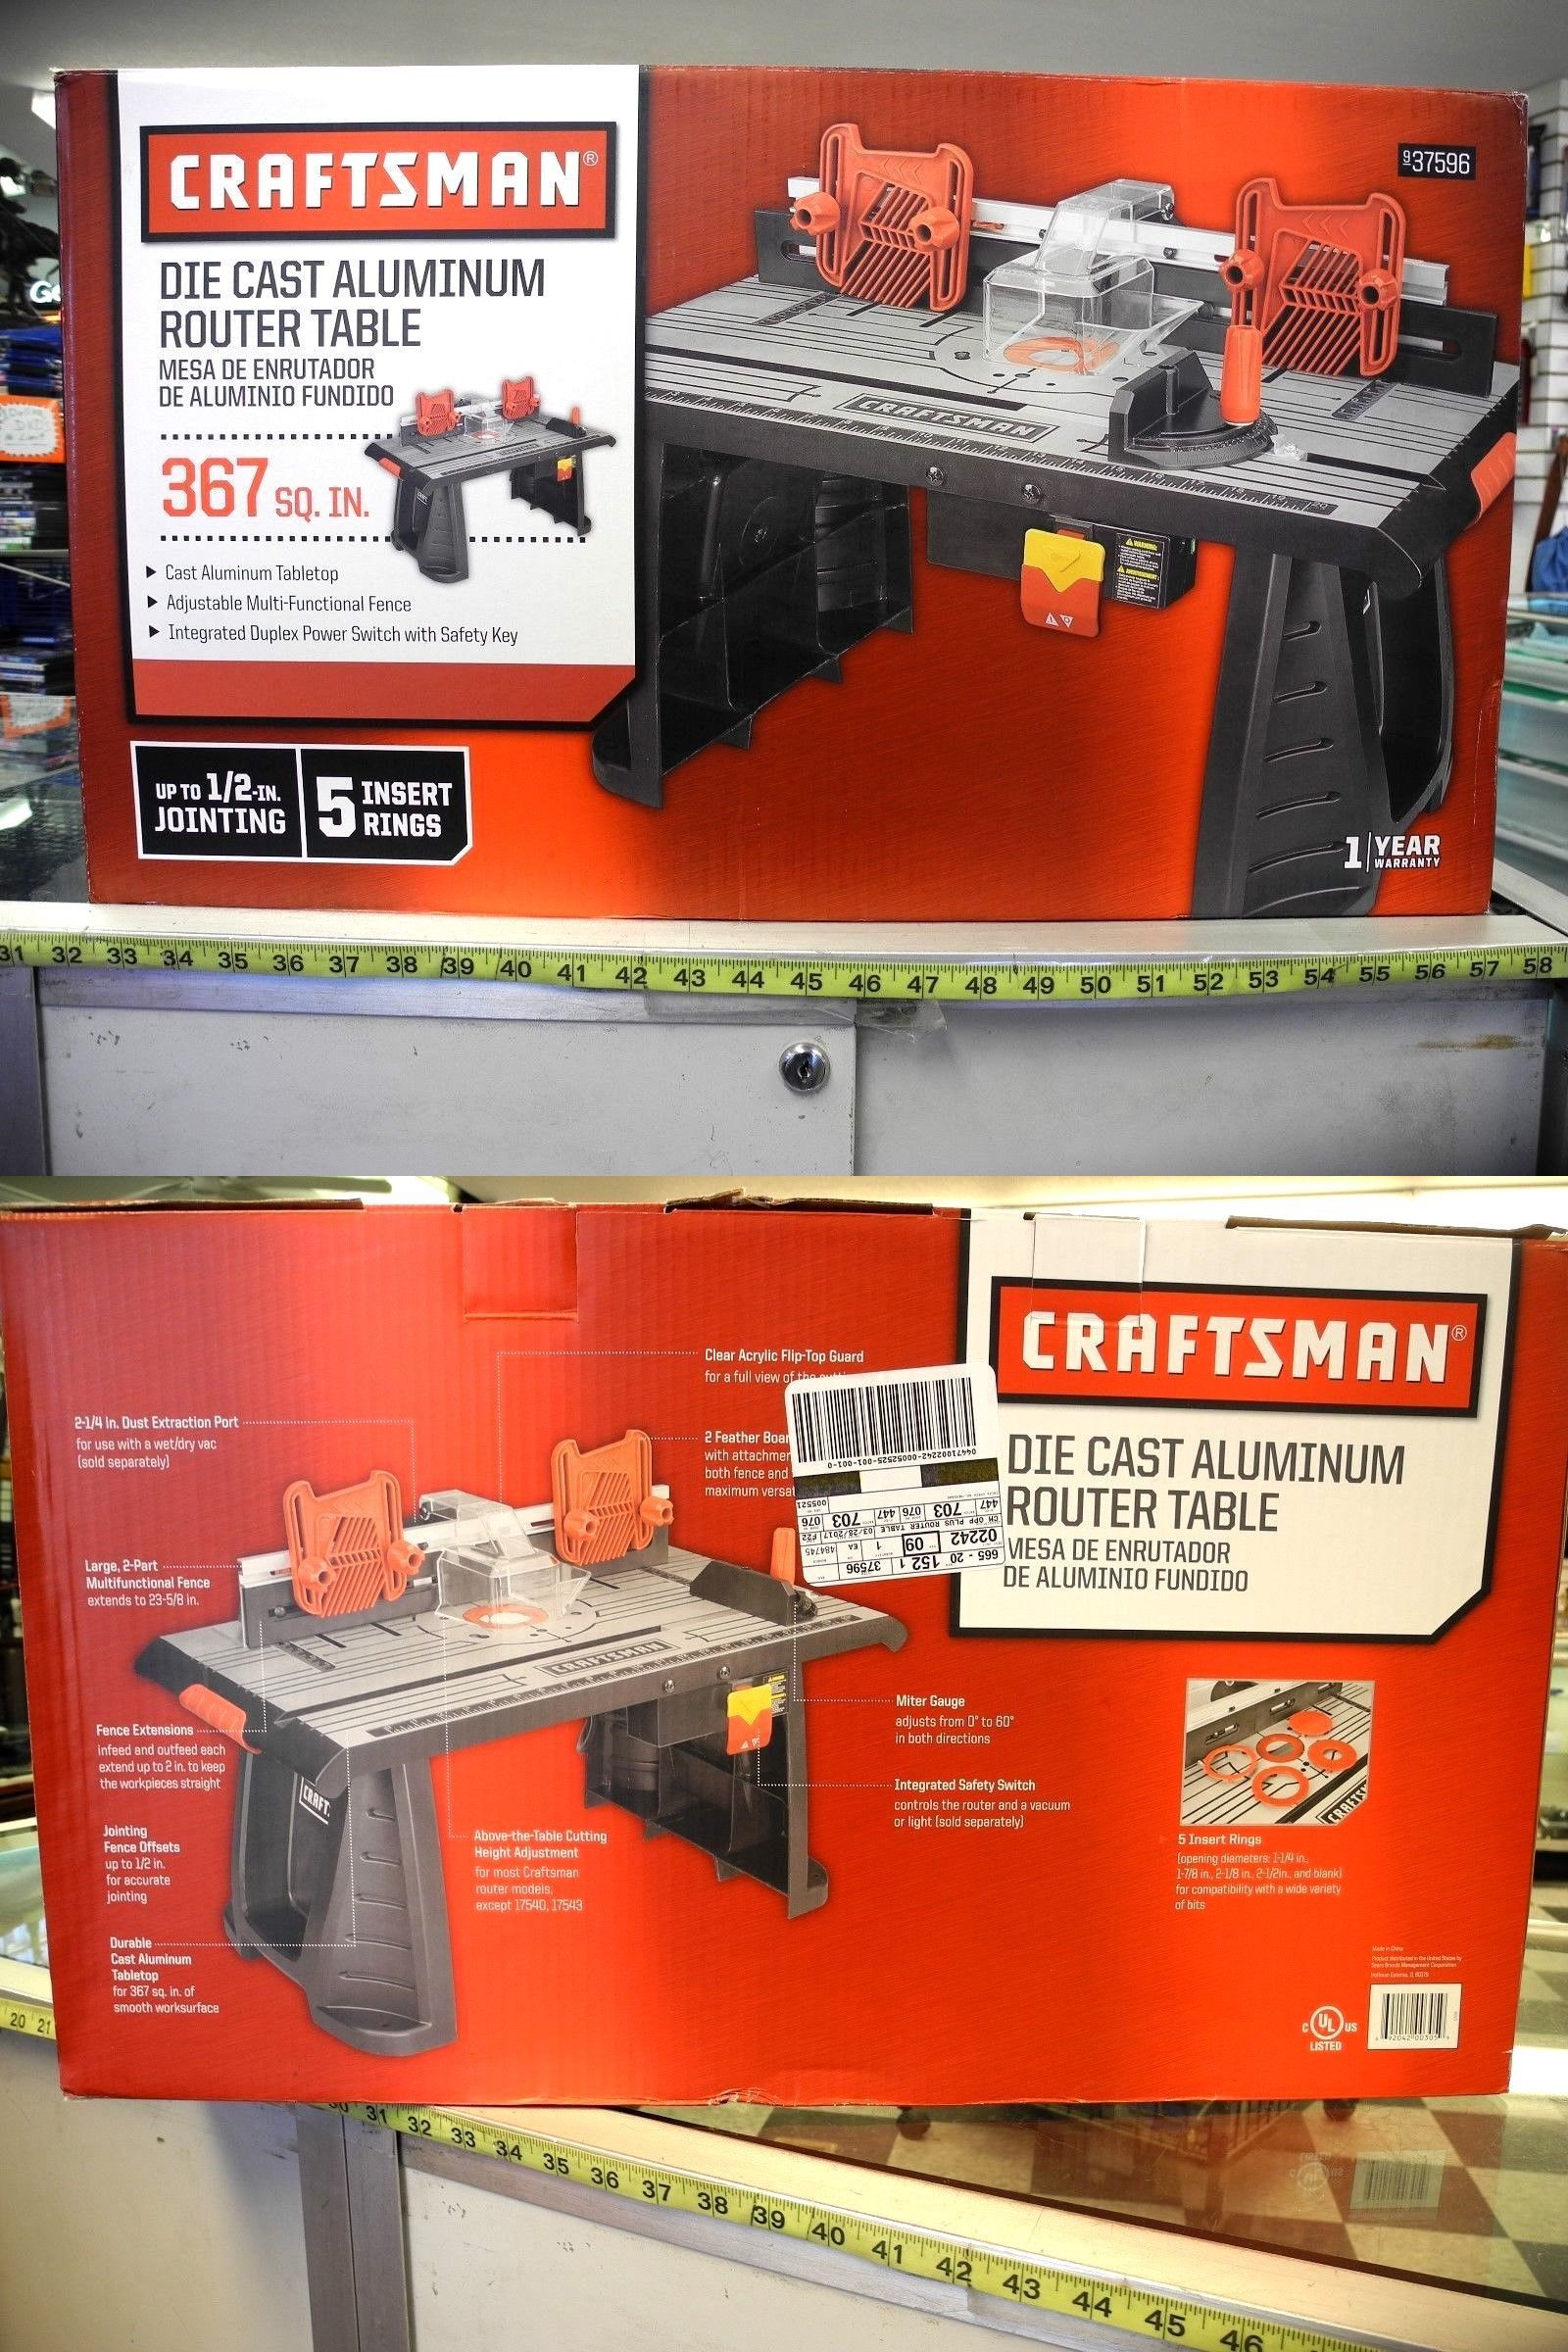 Router tables 75680 craftsman die cast aluminum router table 937596 router tables 75680 craftsman die cast aluminum router table 937596 new buy it keyboard keysfo Images